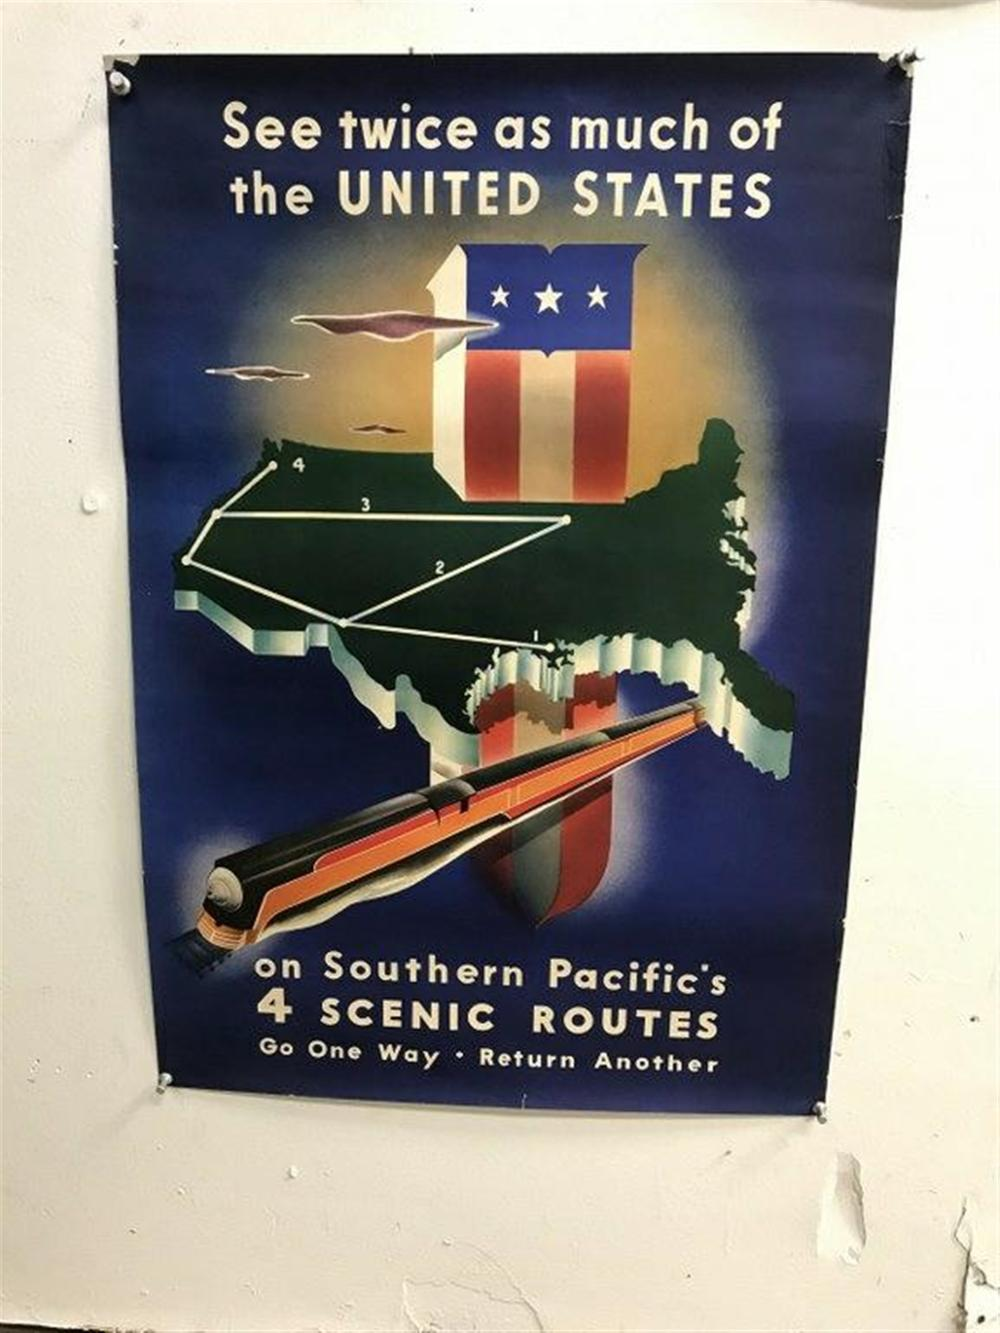 "POSTER- SEE TWICE AS MUCH OF THE UNITED STATES ON SOUTHERN PACIFIC'S 4 SCENIC ROUTES GO ONE WAY RETURN ANOTHER, MEASURES 23 1/2"" X 16"". NICE CONDITION."